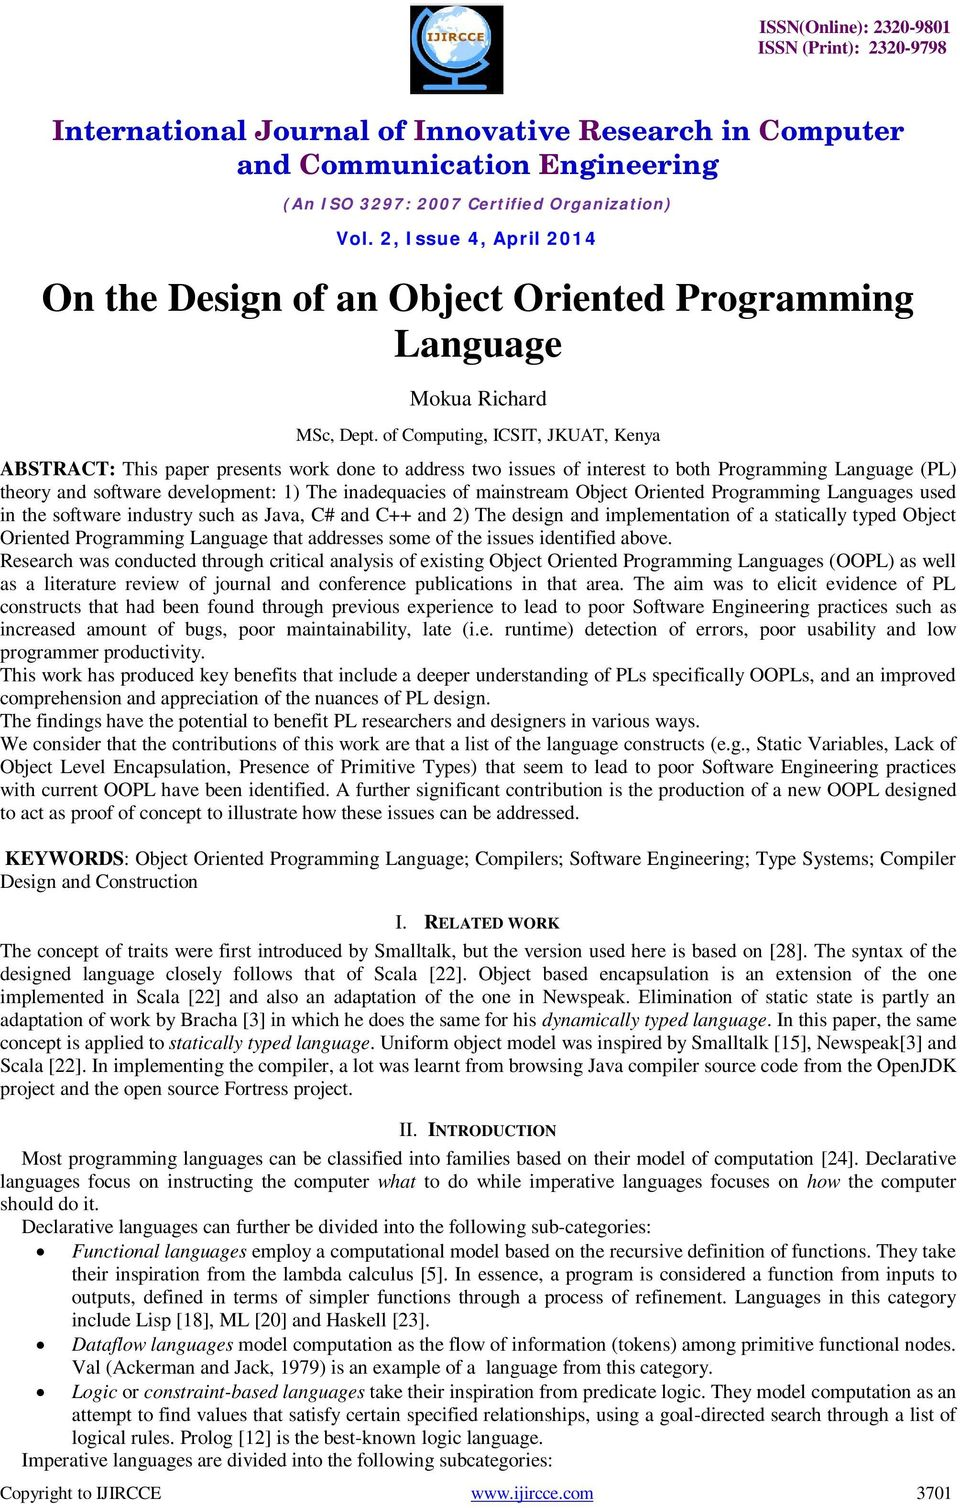 On The Design Of An Object Oriented Programming Language Pdf Free Download